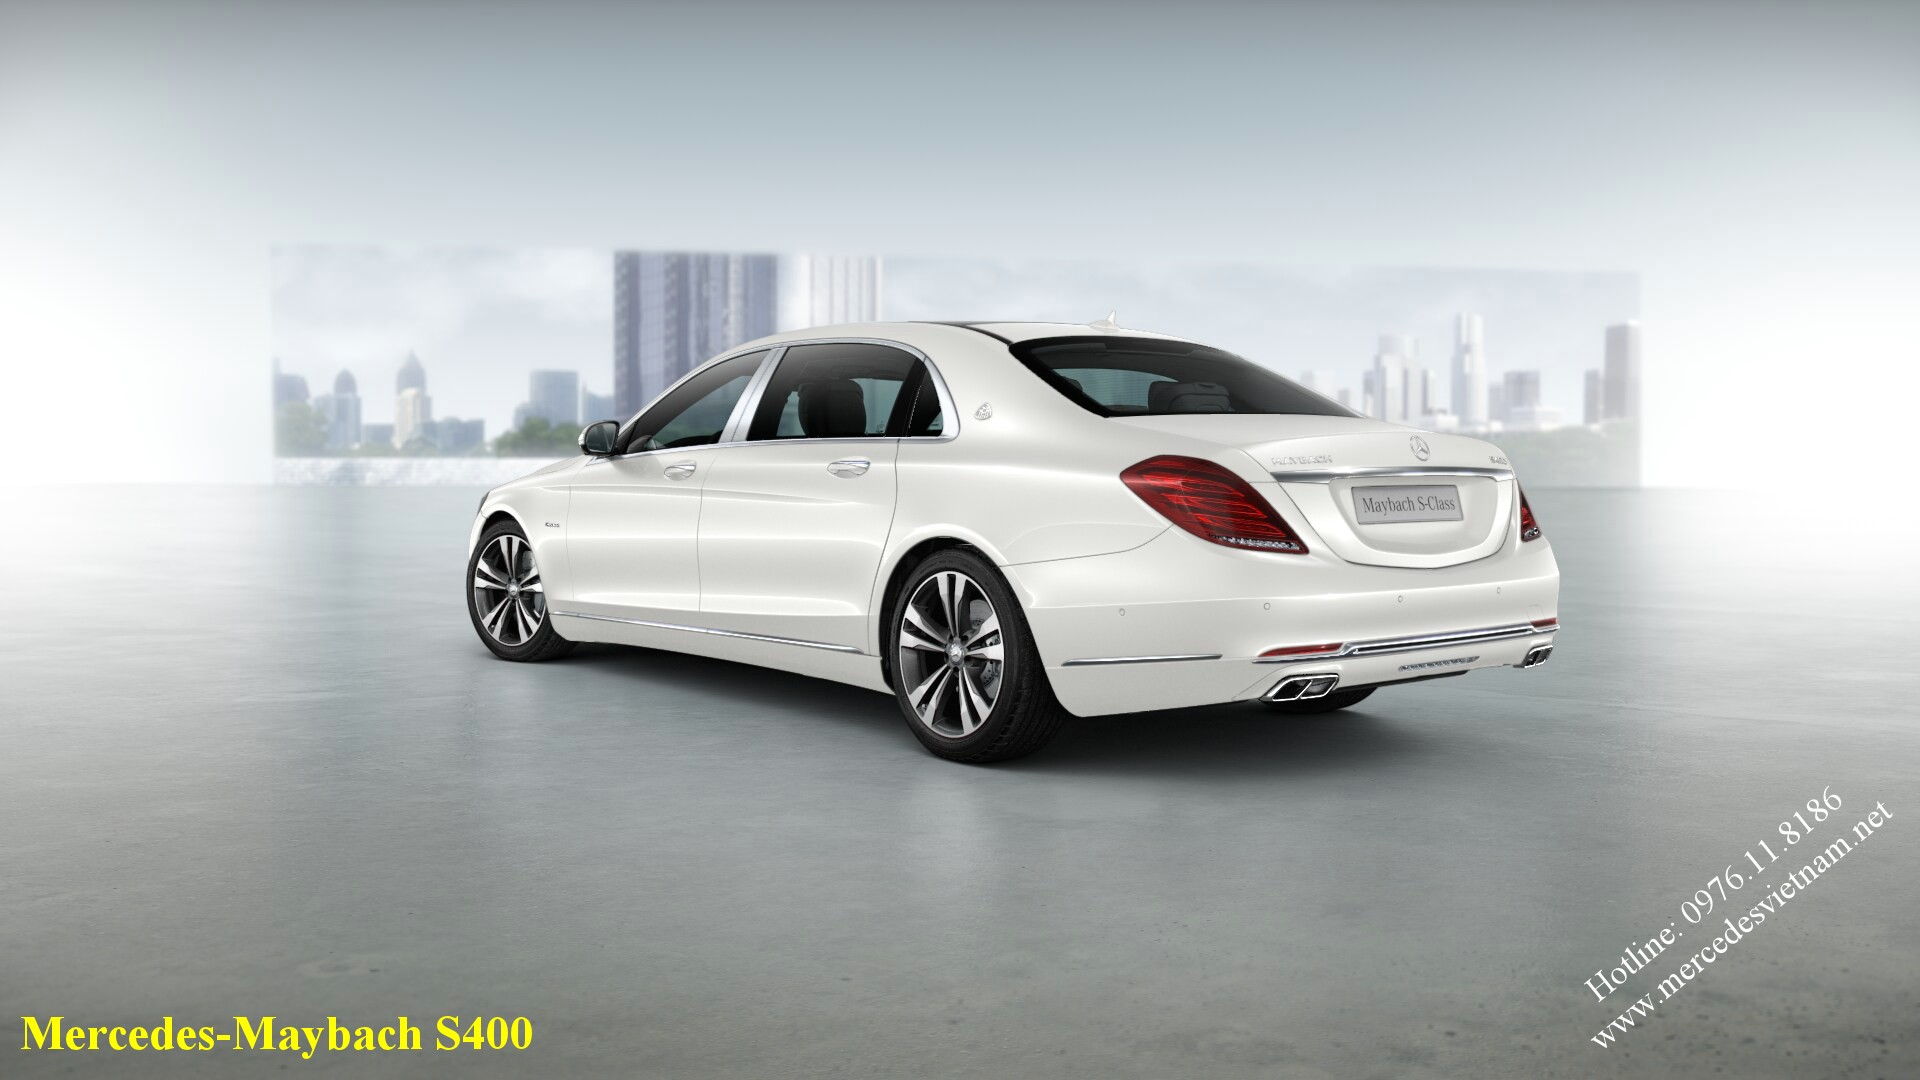 Mercedes-Maybach S400 2017